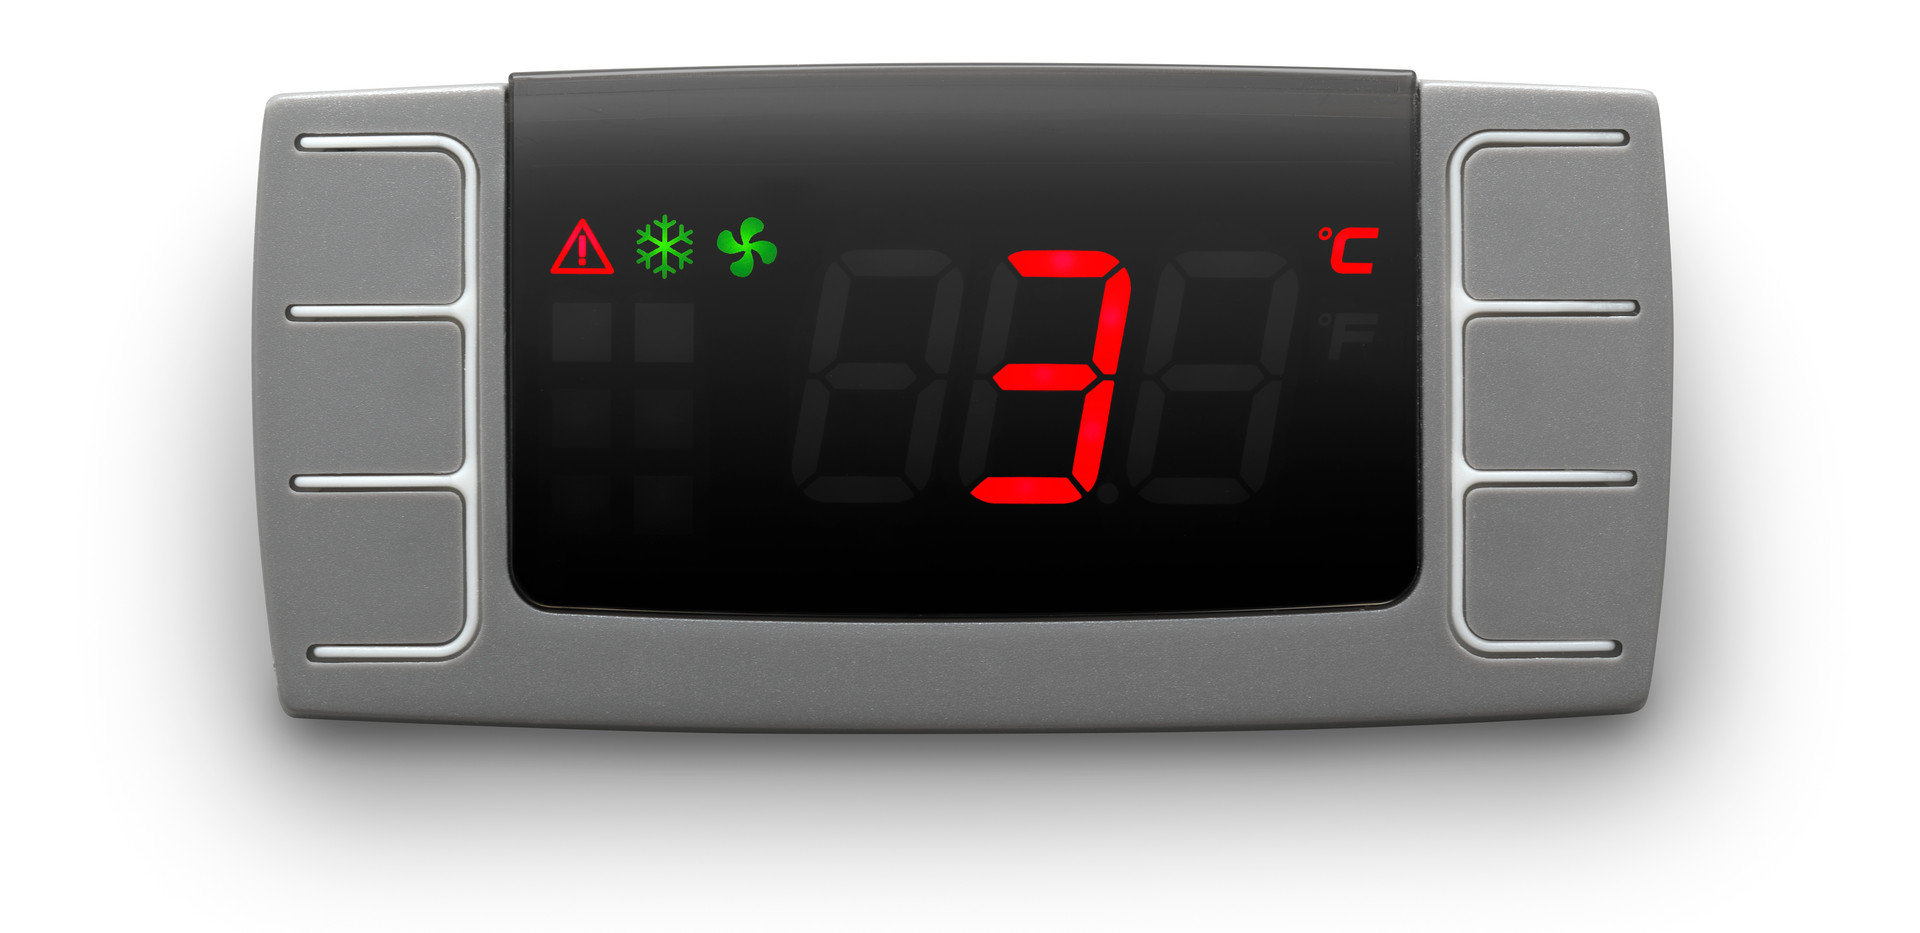 device_display_degrees celsius_with fan